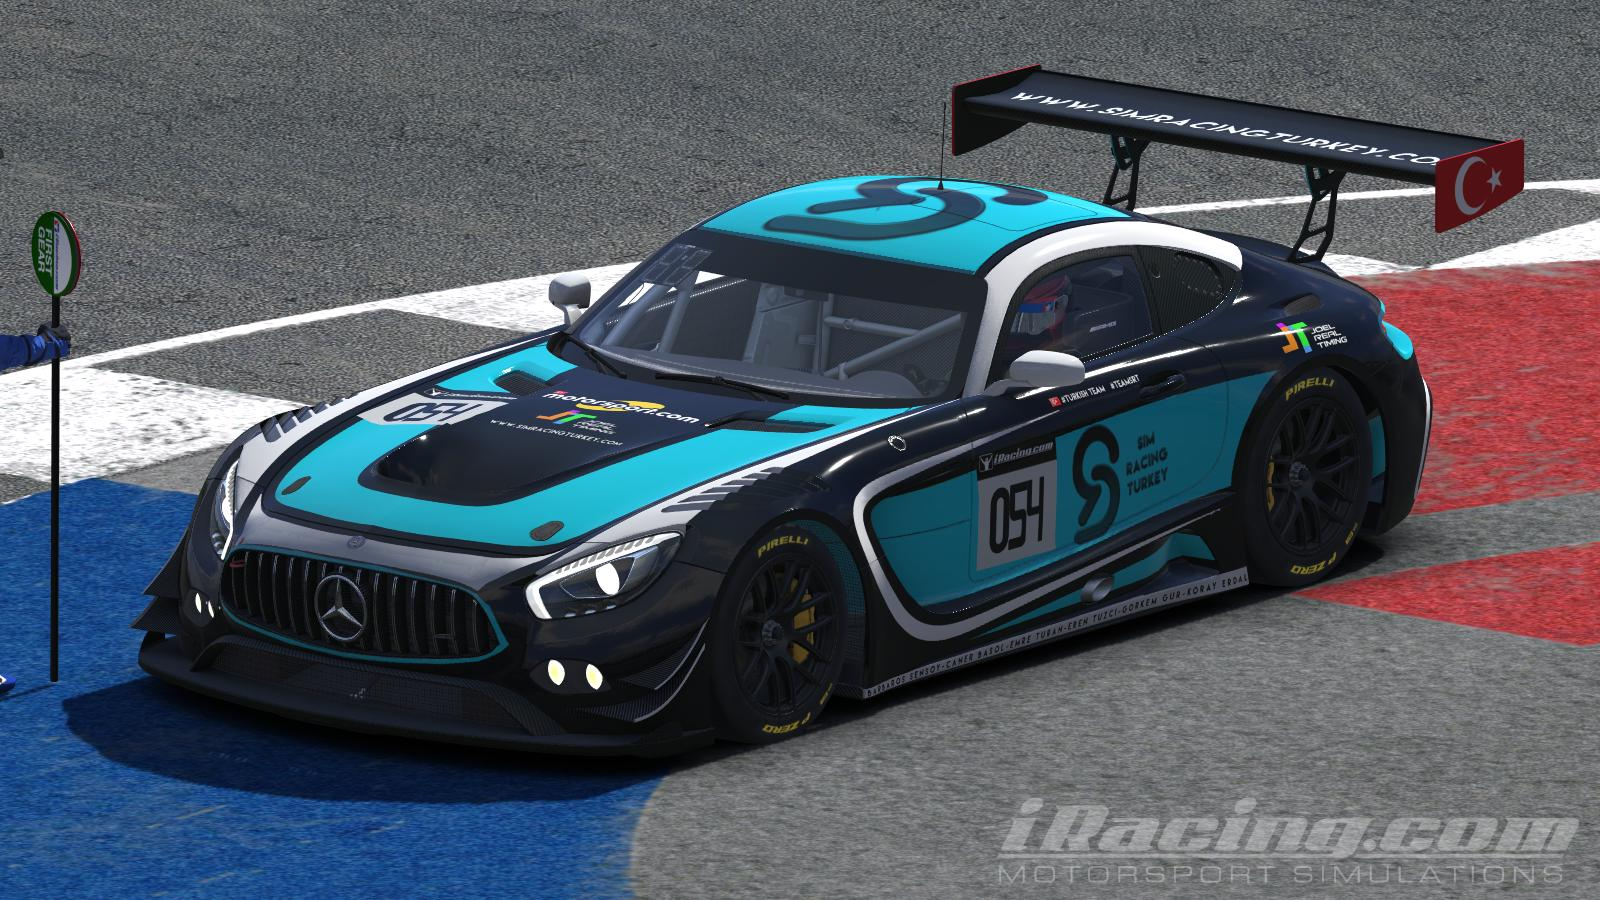 Preview of SimRacingTurkey Special Events Paint by Mertcan Solak